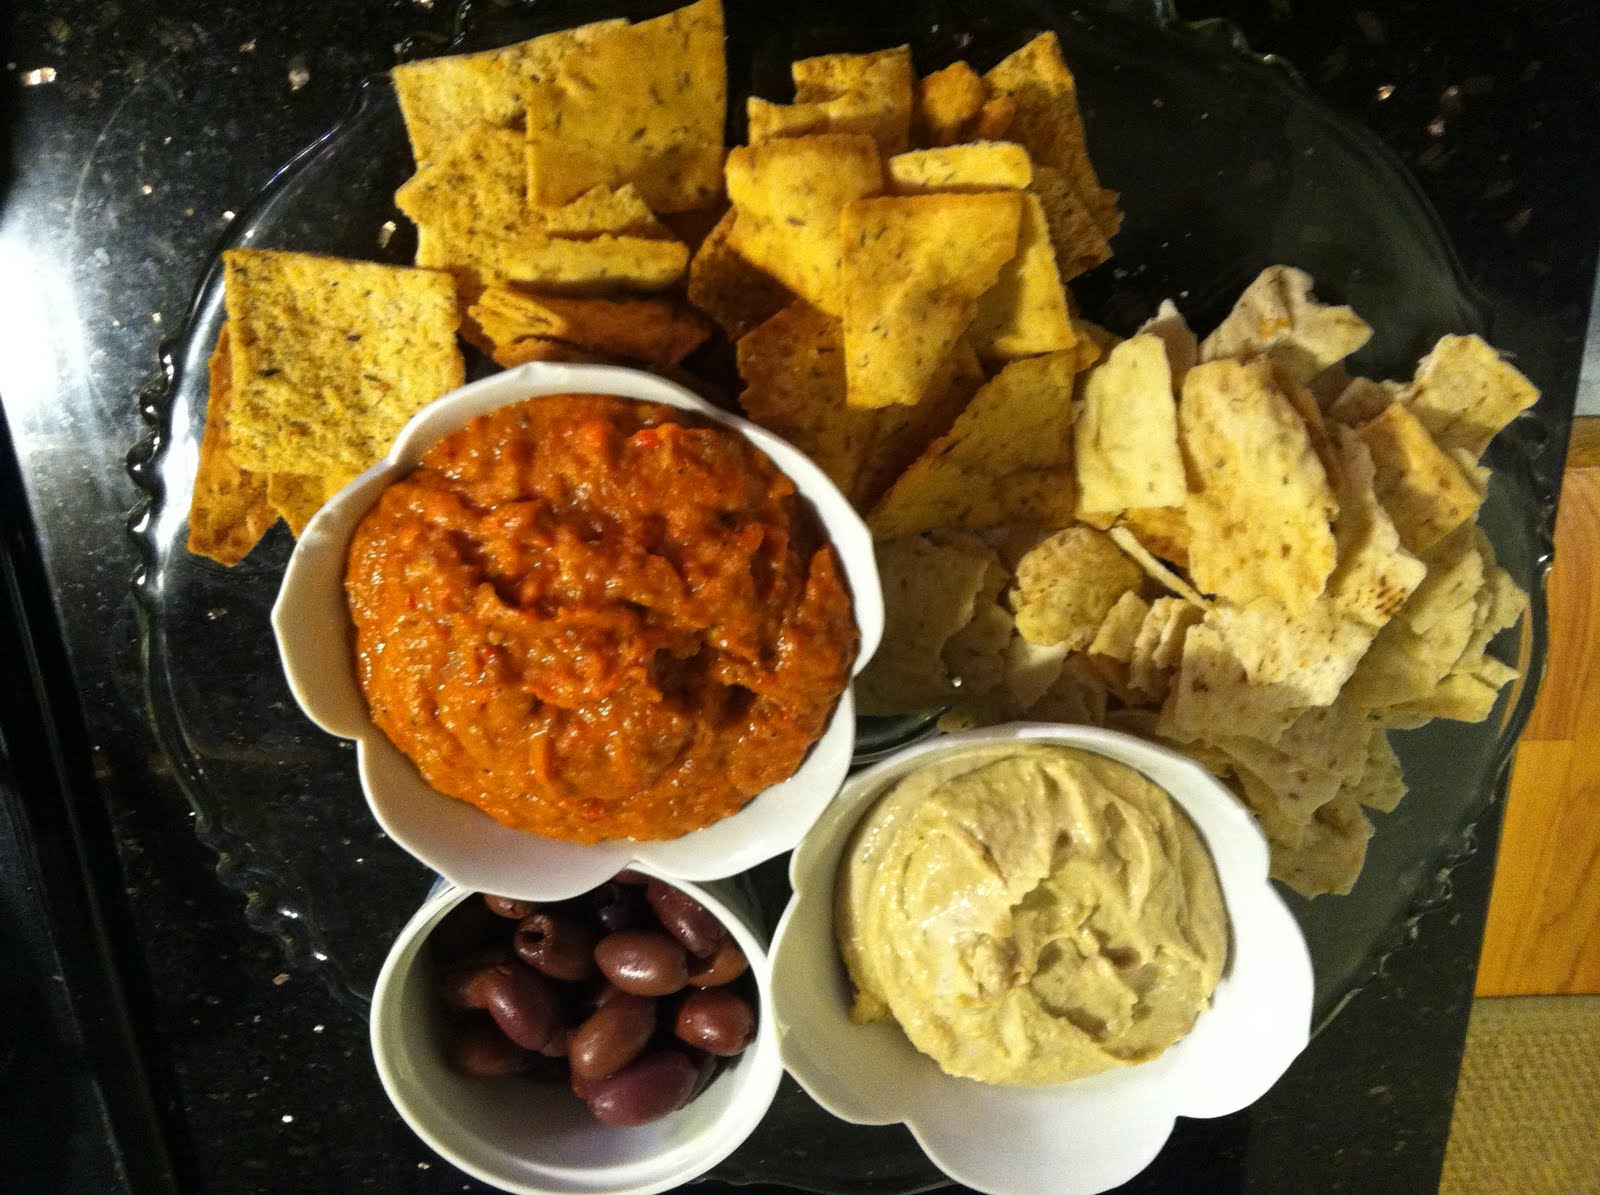 roasted eggplant dip ingredients 1 medium eggplant 2 red bell peppers ...